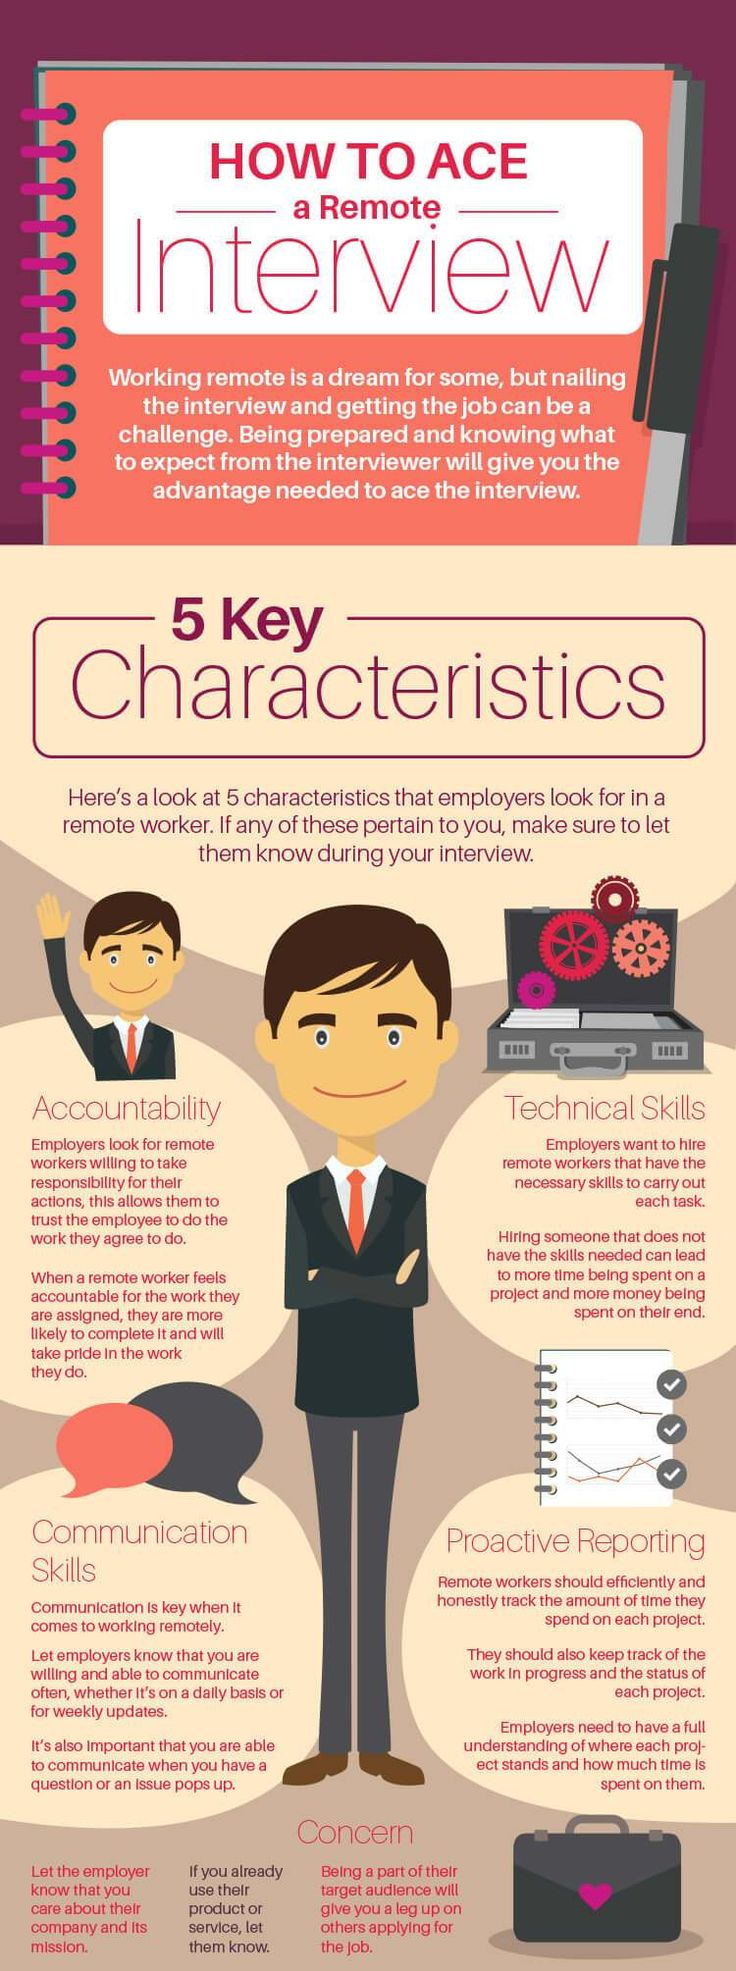 174 best images about Job Interview Tips on Pinterest   Interview ...